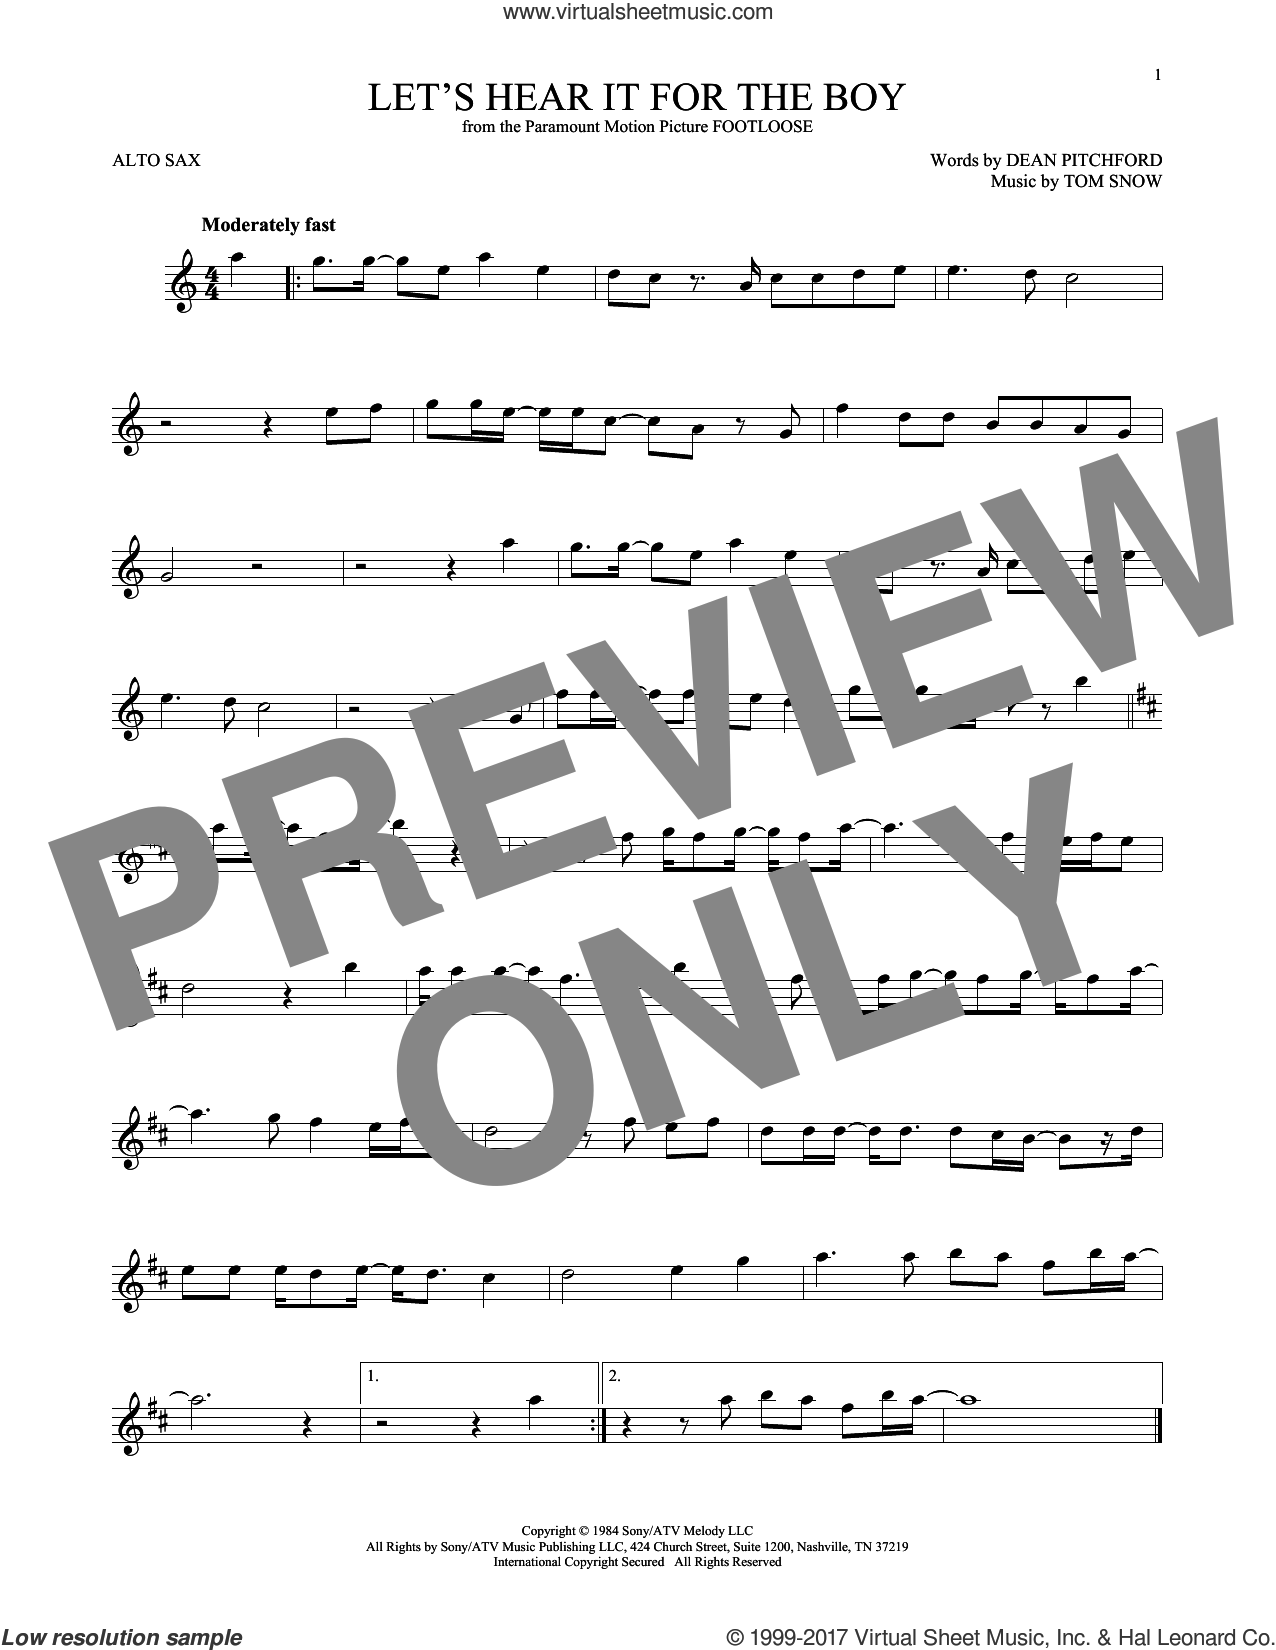 Let's Hear It For The Boy sheet music for alto saxophone solo by Deniece Williams, Dean Pitchford and Tom Snow, intermediate skill level